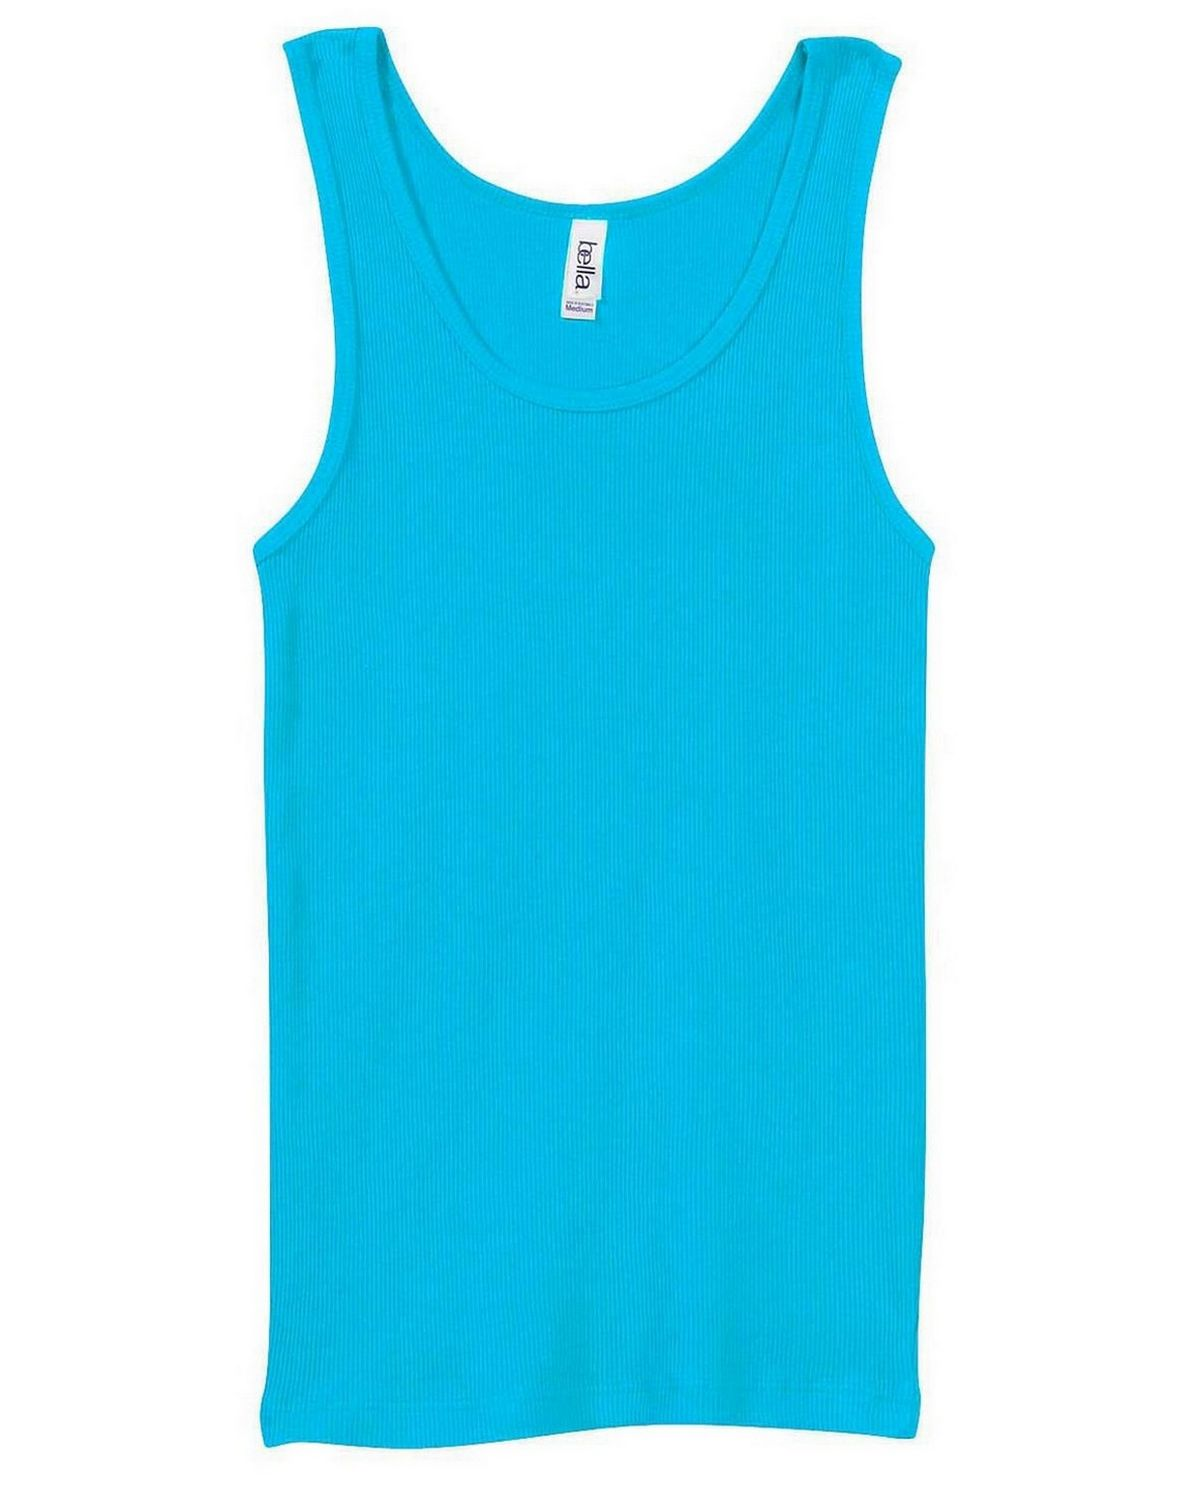 Bella + Canvas 4000 Ladies 2x1 Rib Tank - Turquoise - M 4000